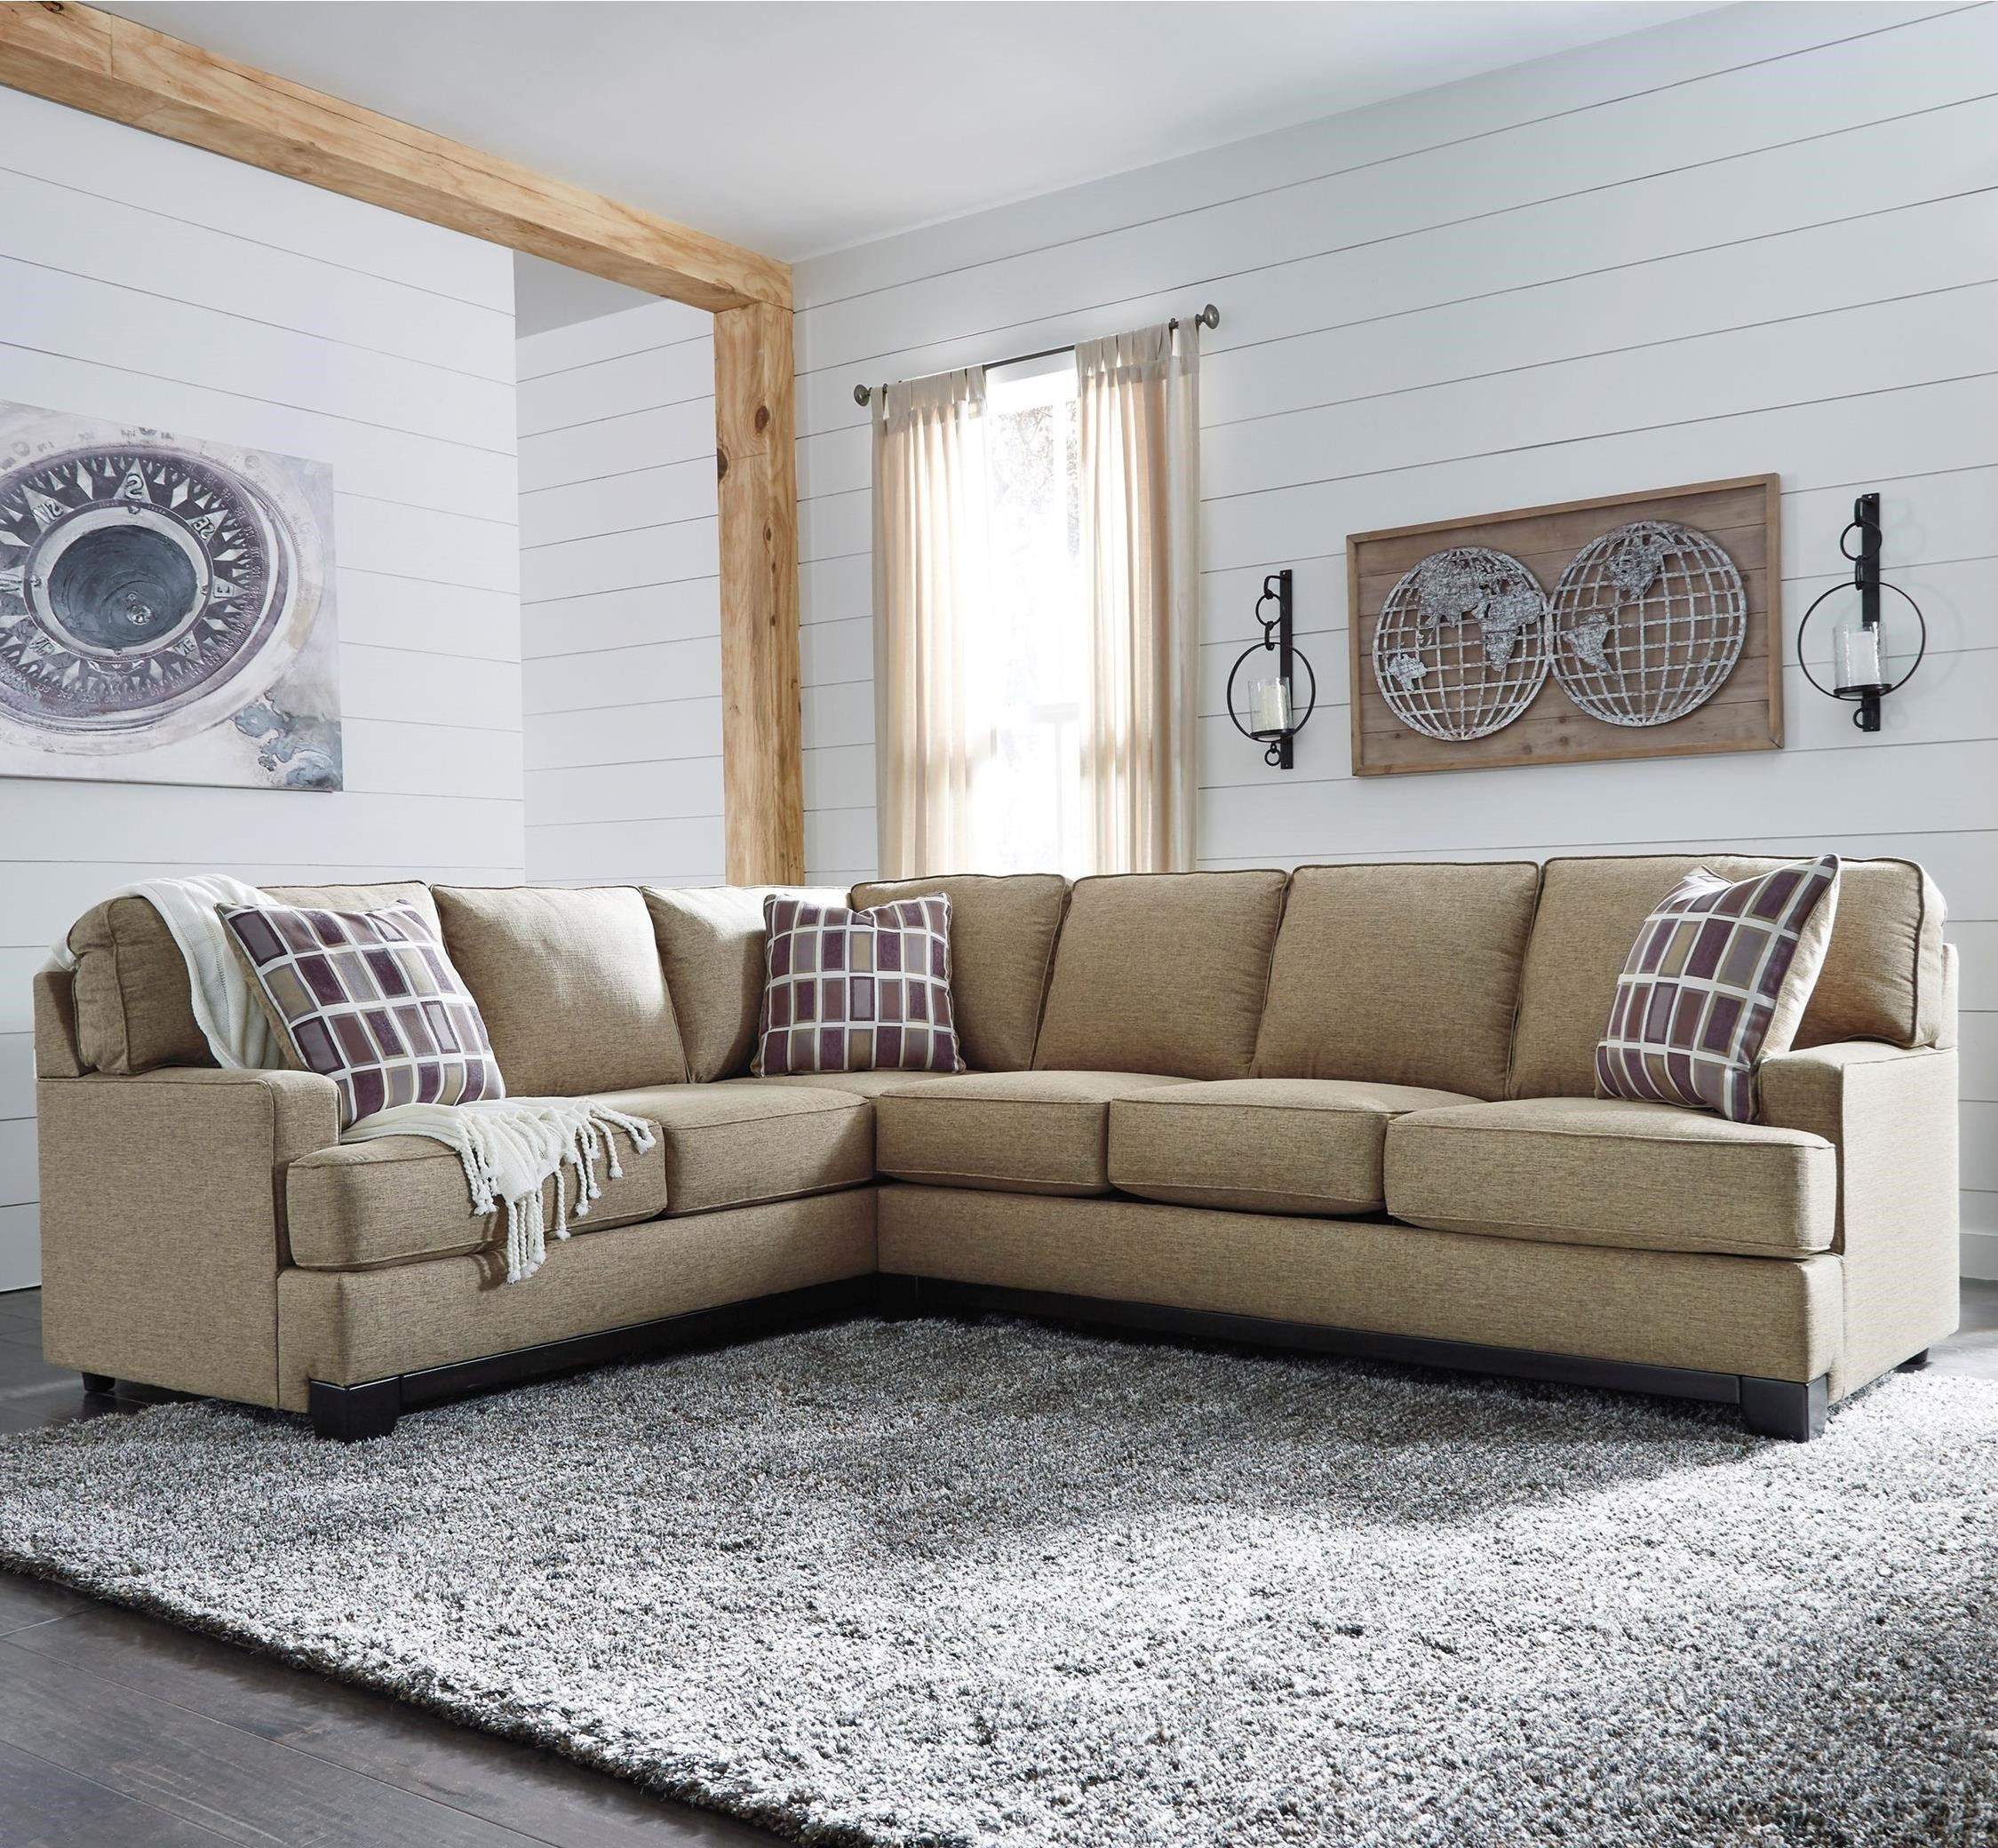 Benchcraft Larkhaven Contemporary 2 Piece Sectional With Right Sofa